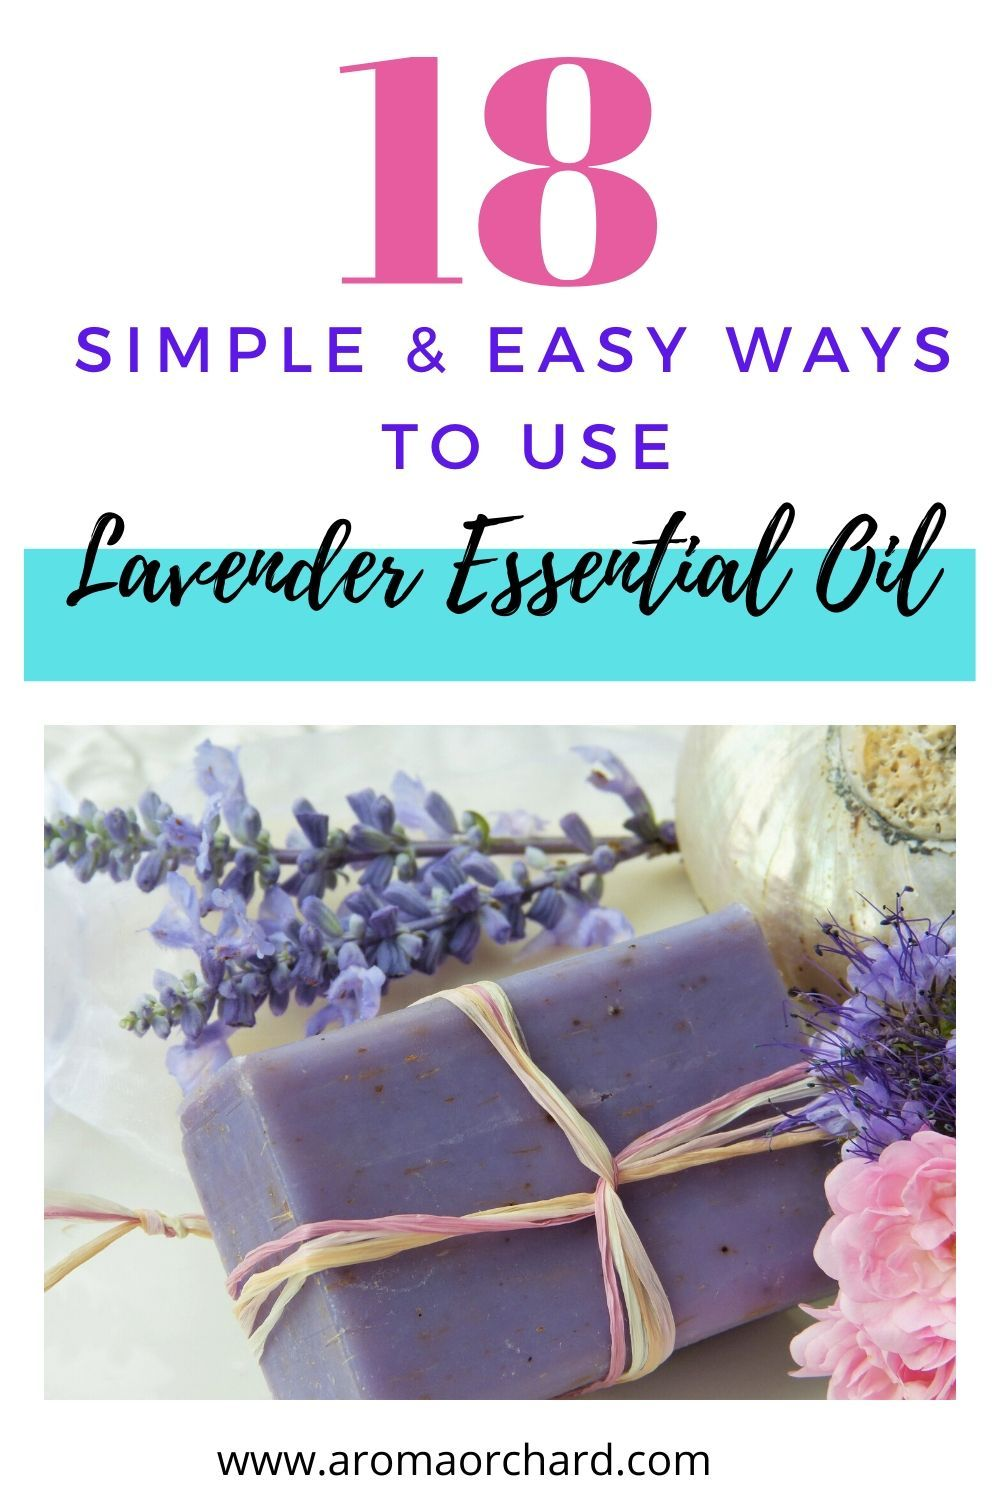 How To Use Lavender Essential Oil As A Beginner In 2020 Lavender Essential Oil Uses Lavender Oil For Skin Lavender Essential